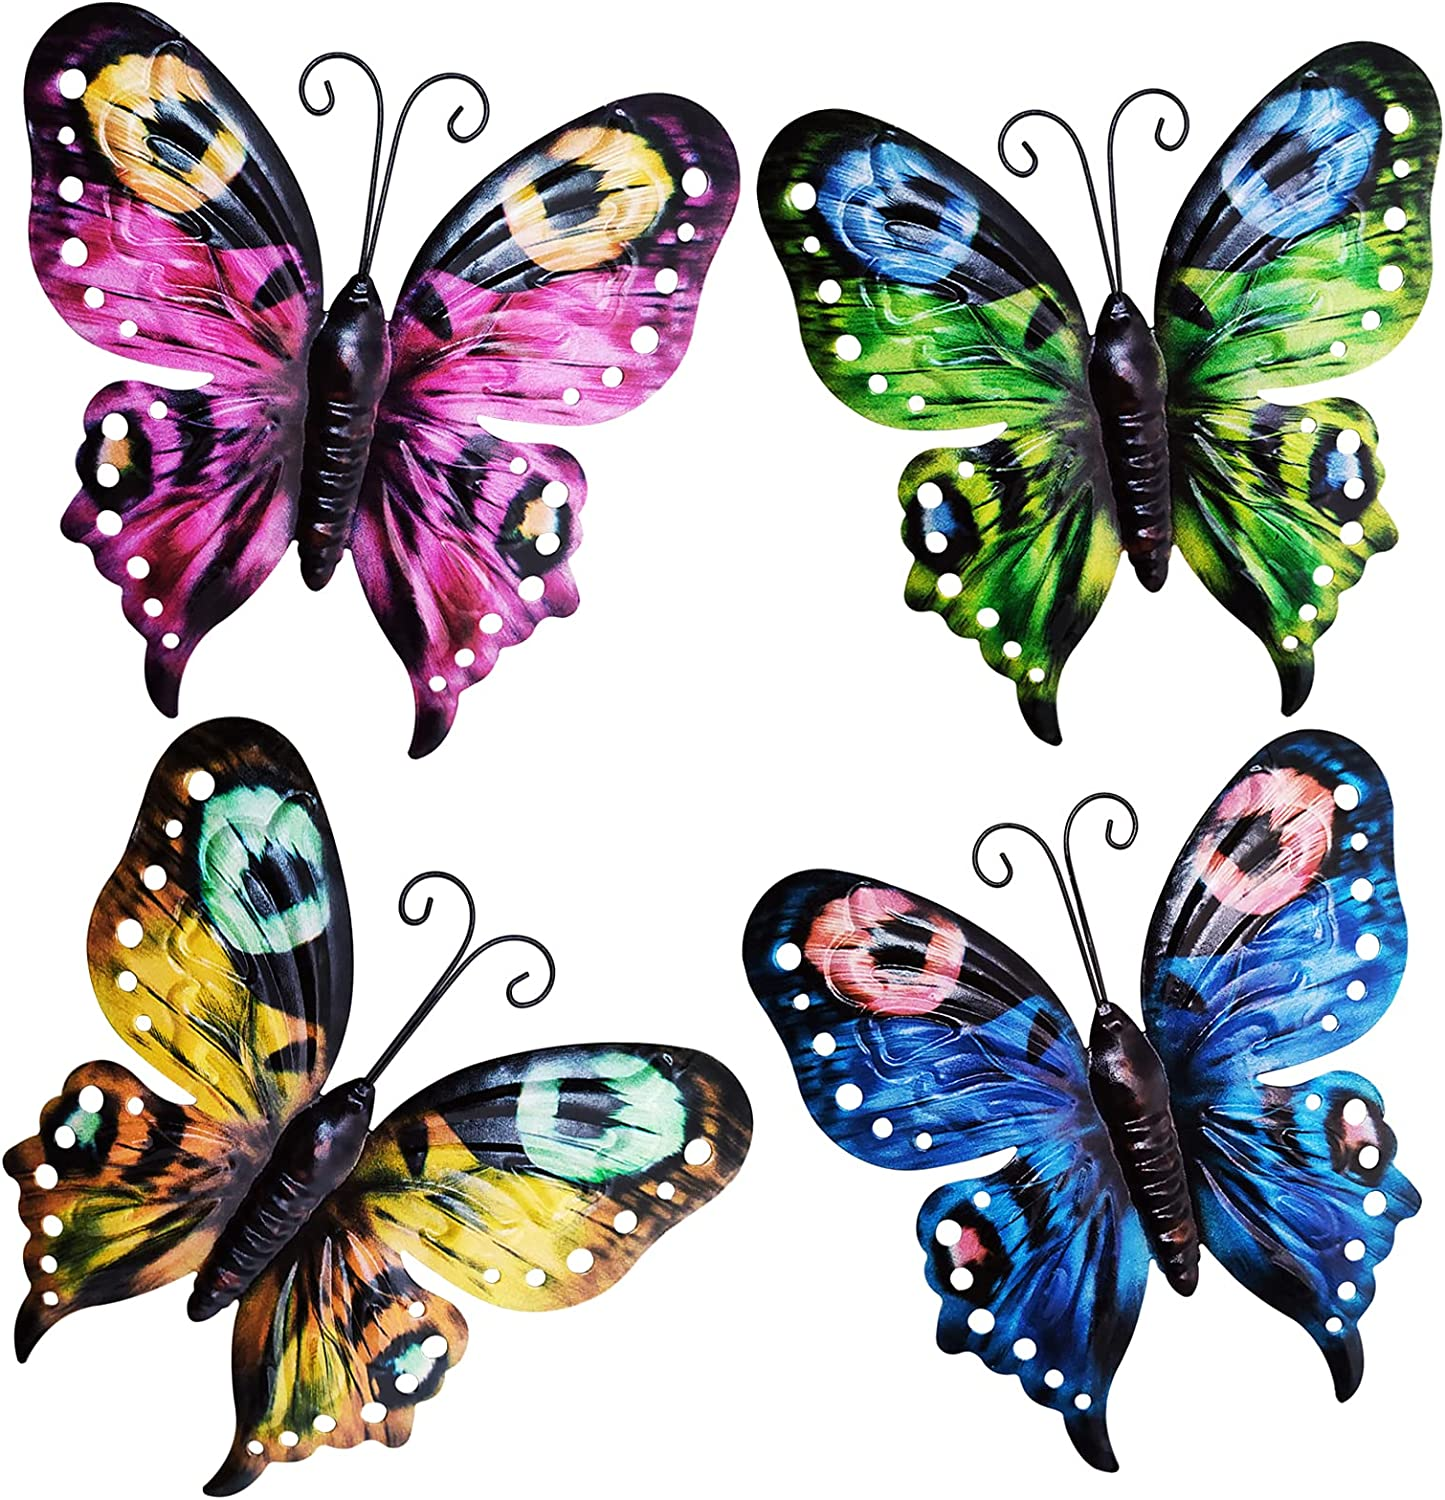 Large Metal Butterfly Wall Decor, Wall Art Decorations Hanging, Set of 4 Colorful Garden Wall Sculptures for Home, Bedroom, Living Room, Office, Fence, Garden, Yard, Indoor Outdoor Wall Decor